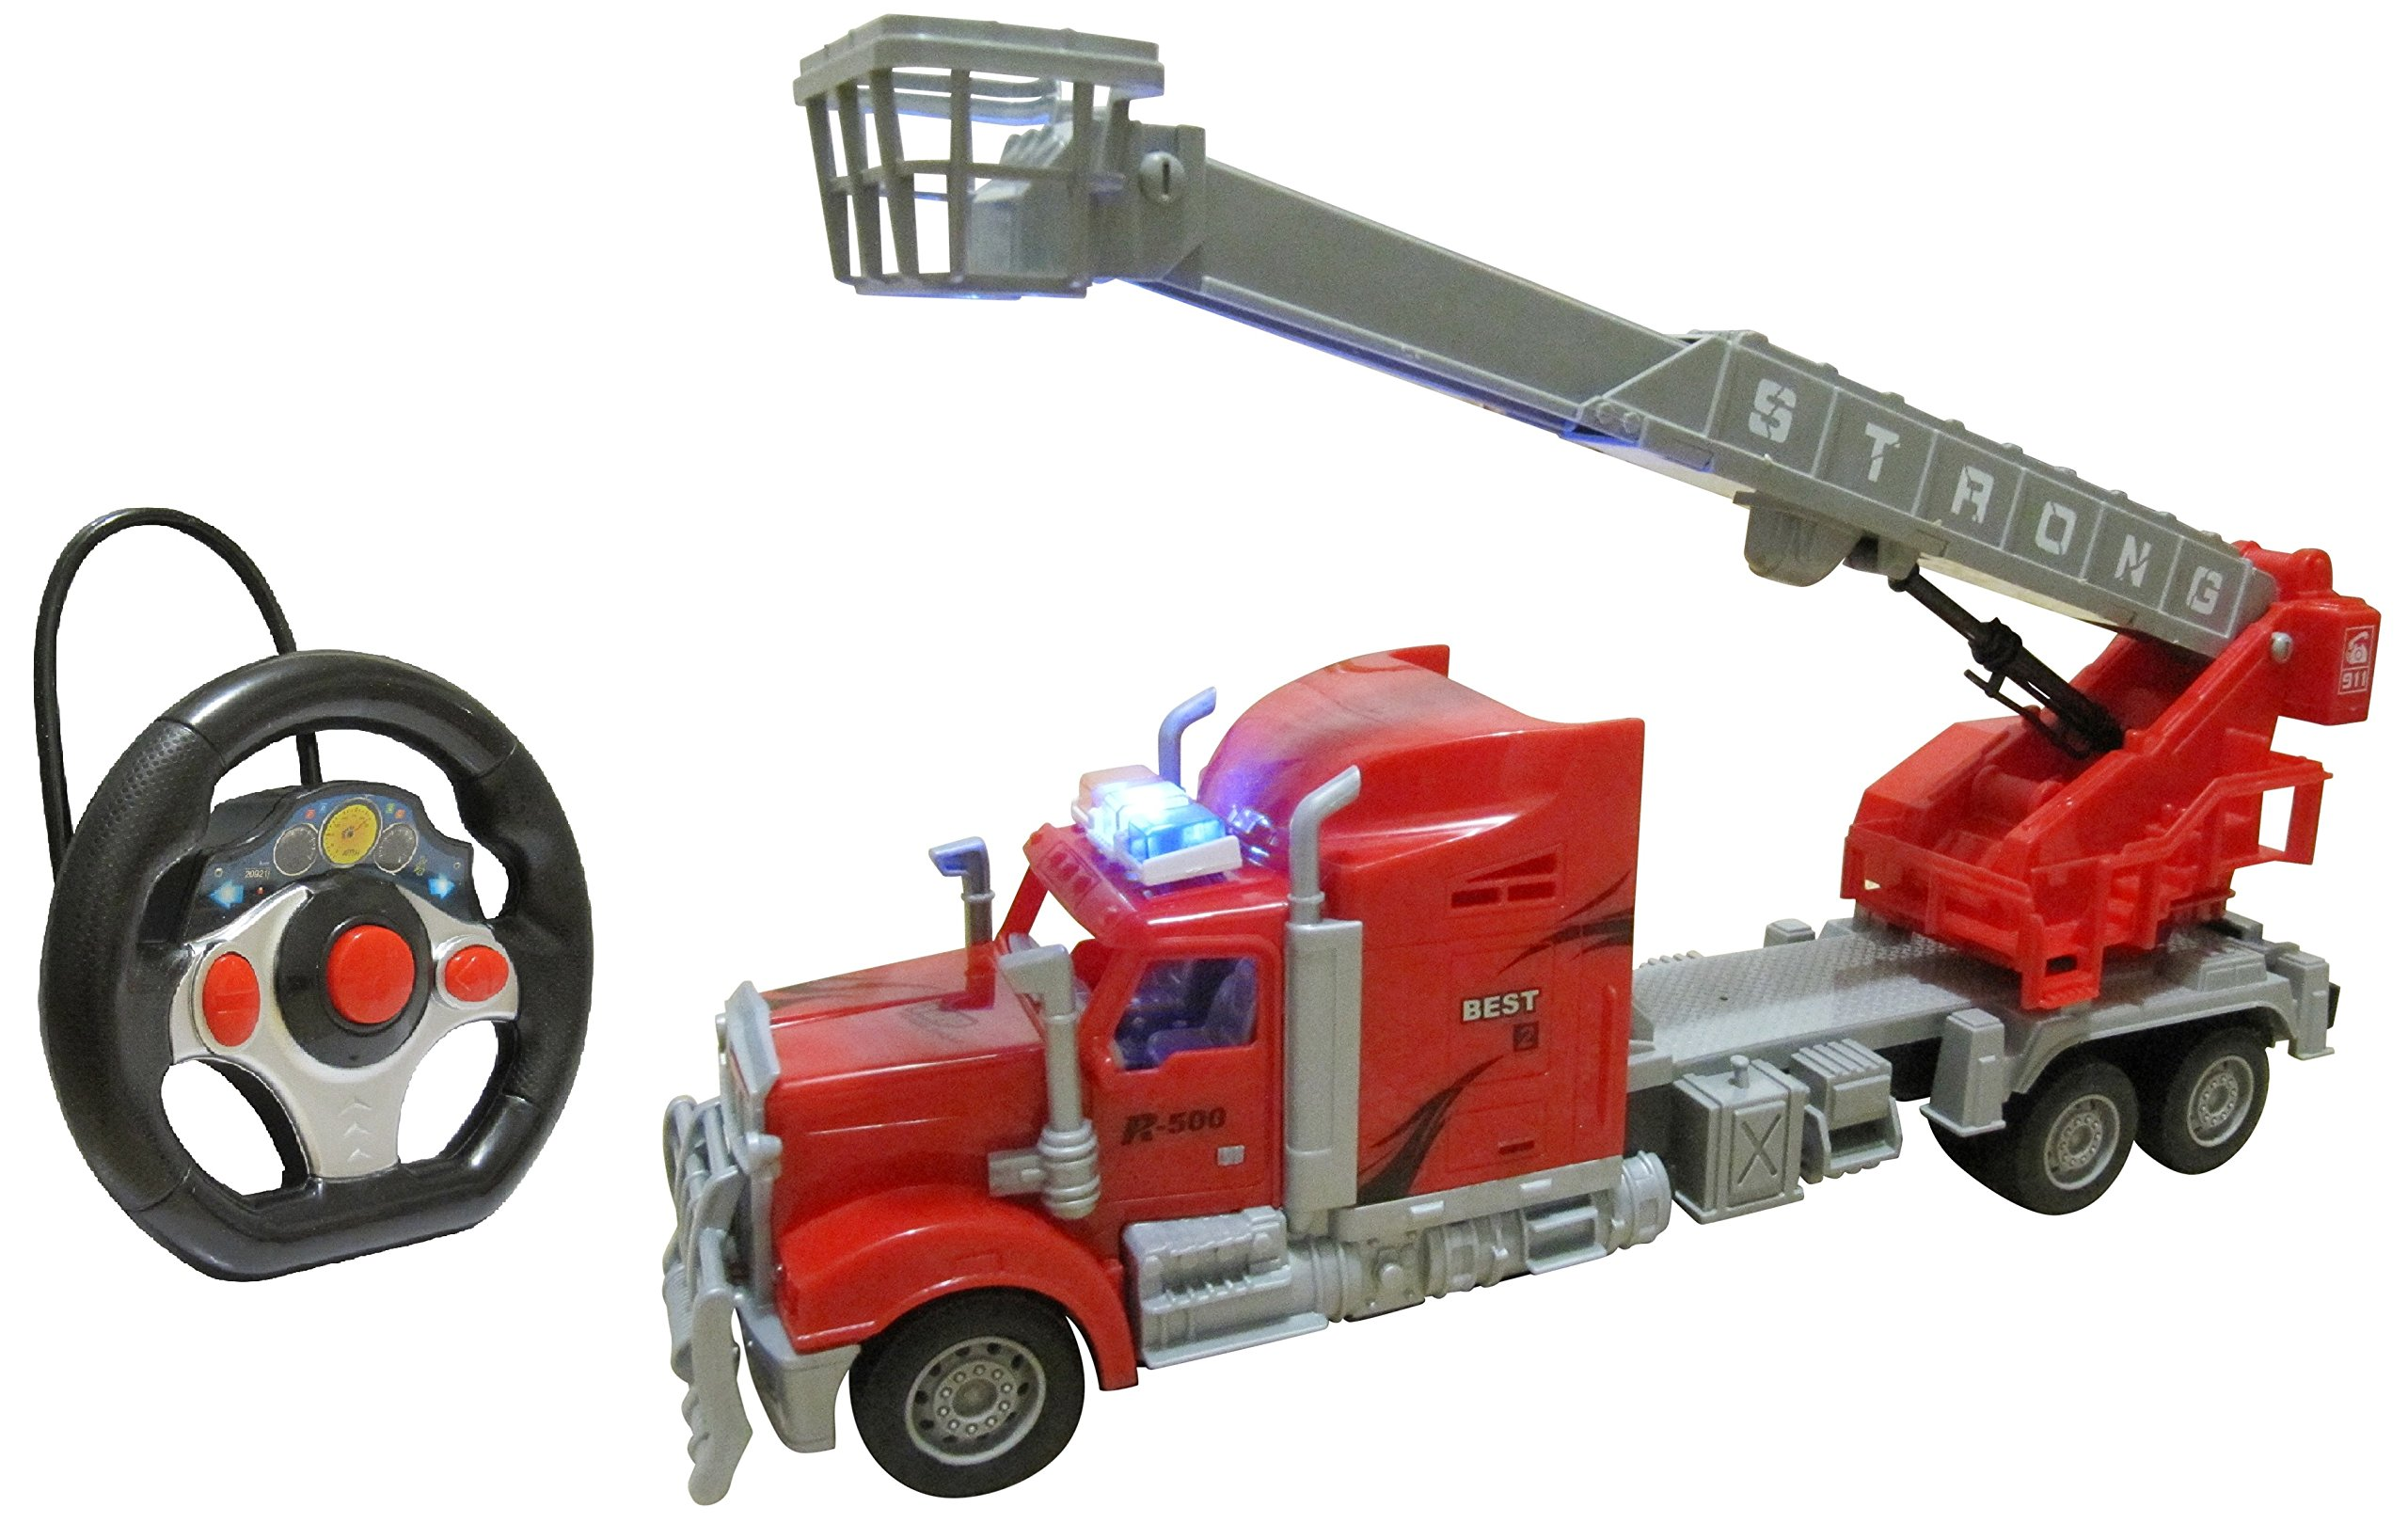 Remote Control Toy Fire Fighter Truck - RC Fire Engine Rescue Truck Toy For Boys - With Lights